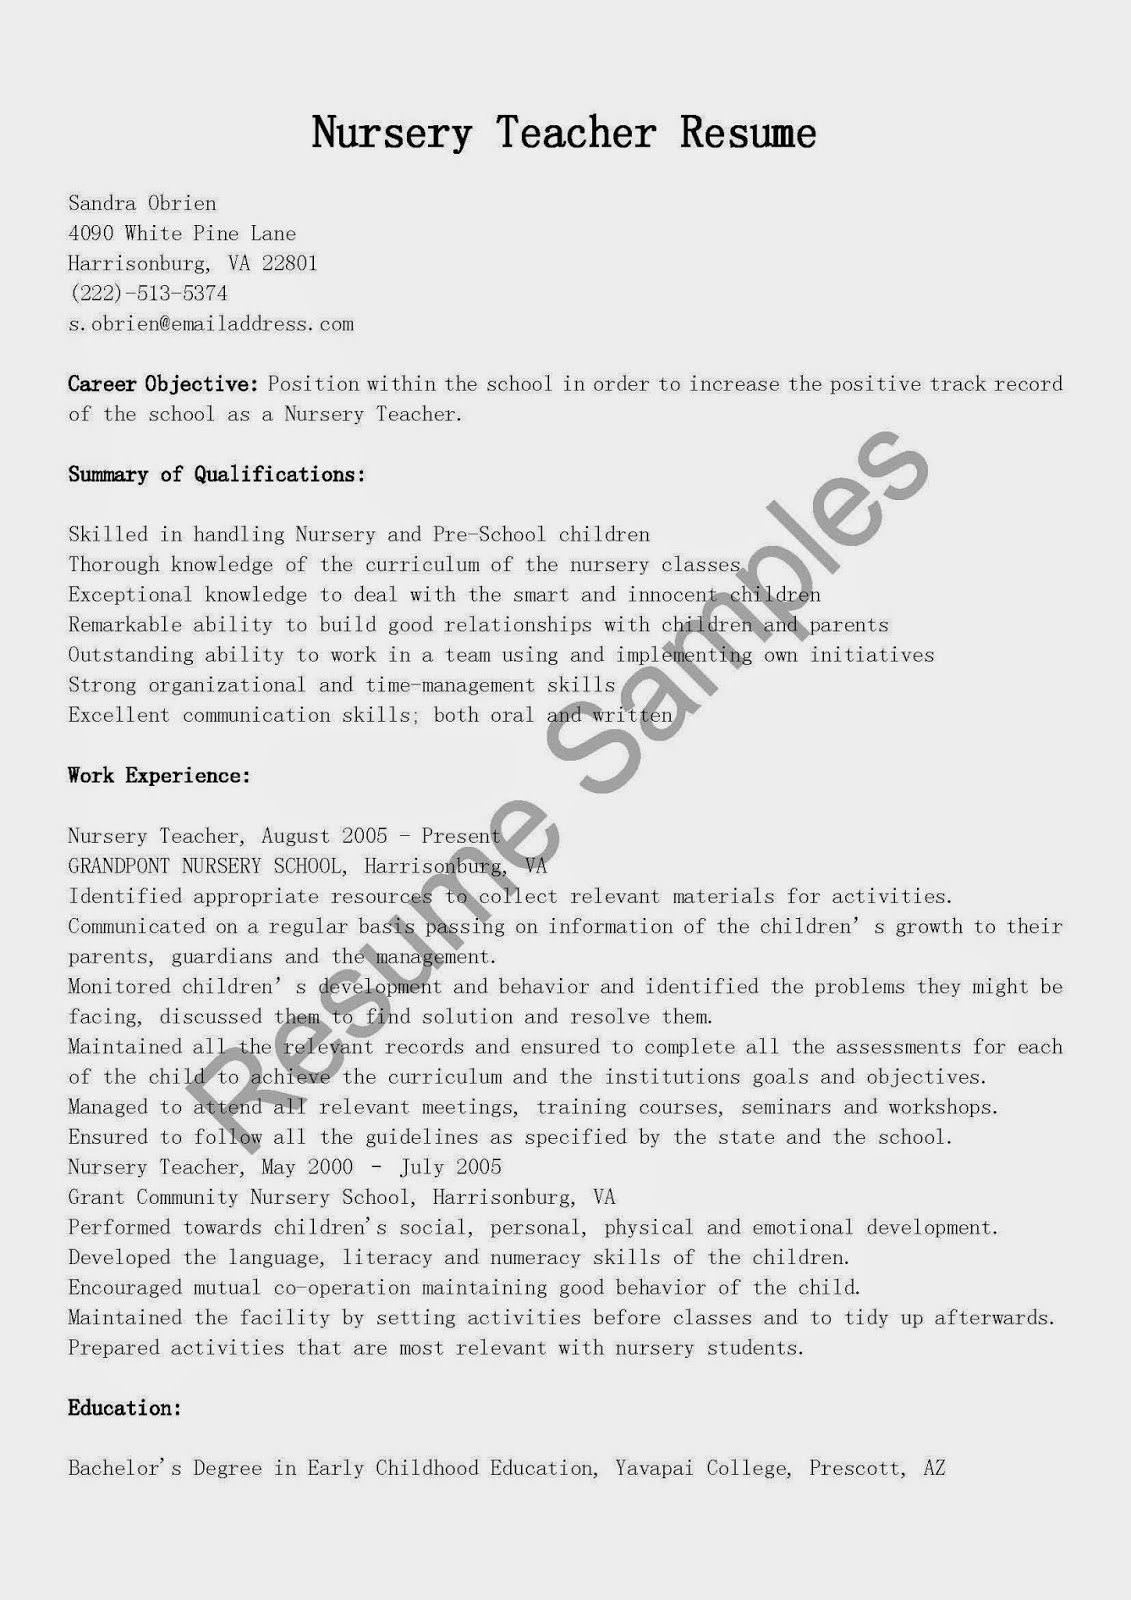 Resume Samples Nursery Teacher Resume Sample